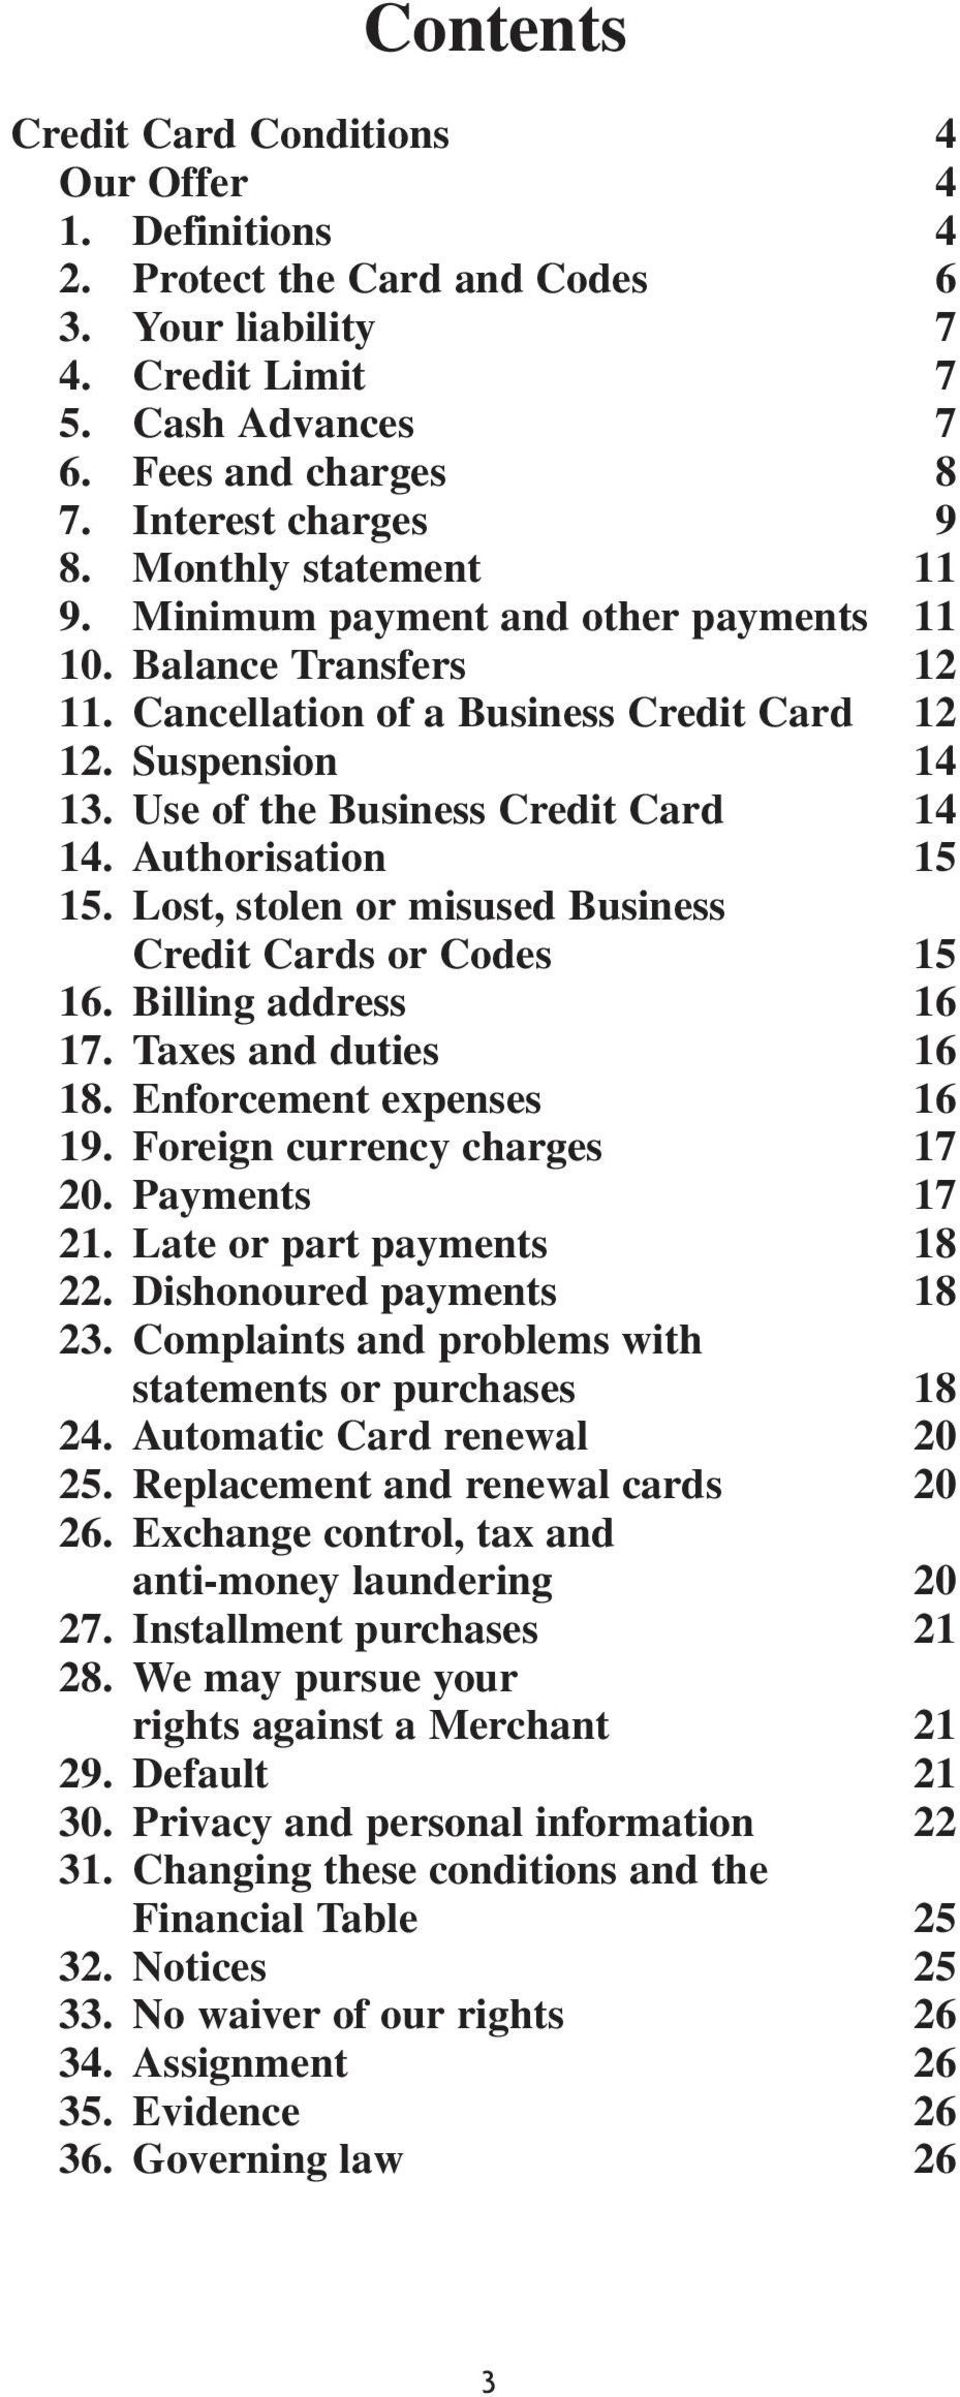 Authorisation 15 15. Lost, stolen or misused Business Credit Cards or Codes 15 16. Billing address 16 17. Taxes and duties 16 18. Enforcement expenses 16 19. Foreign currency charges 17 20.